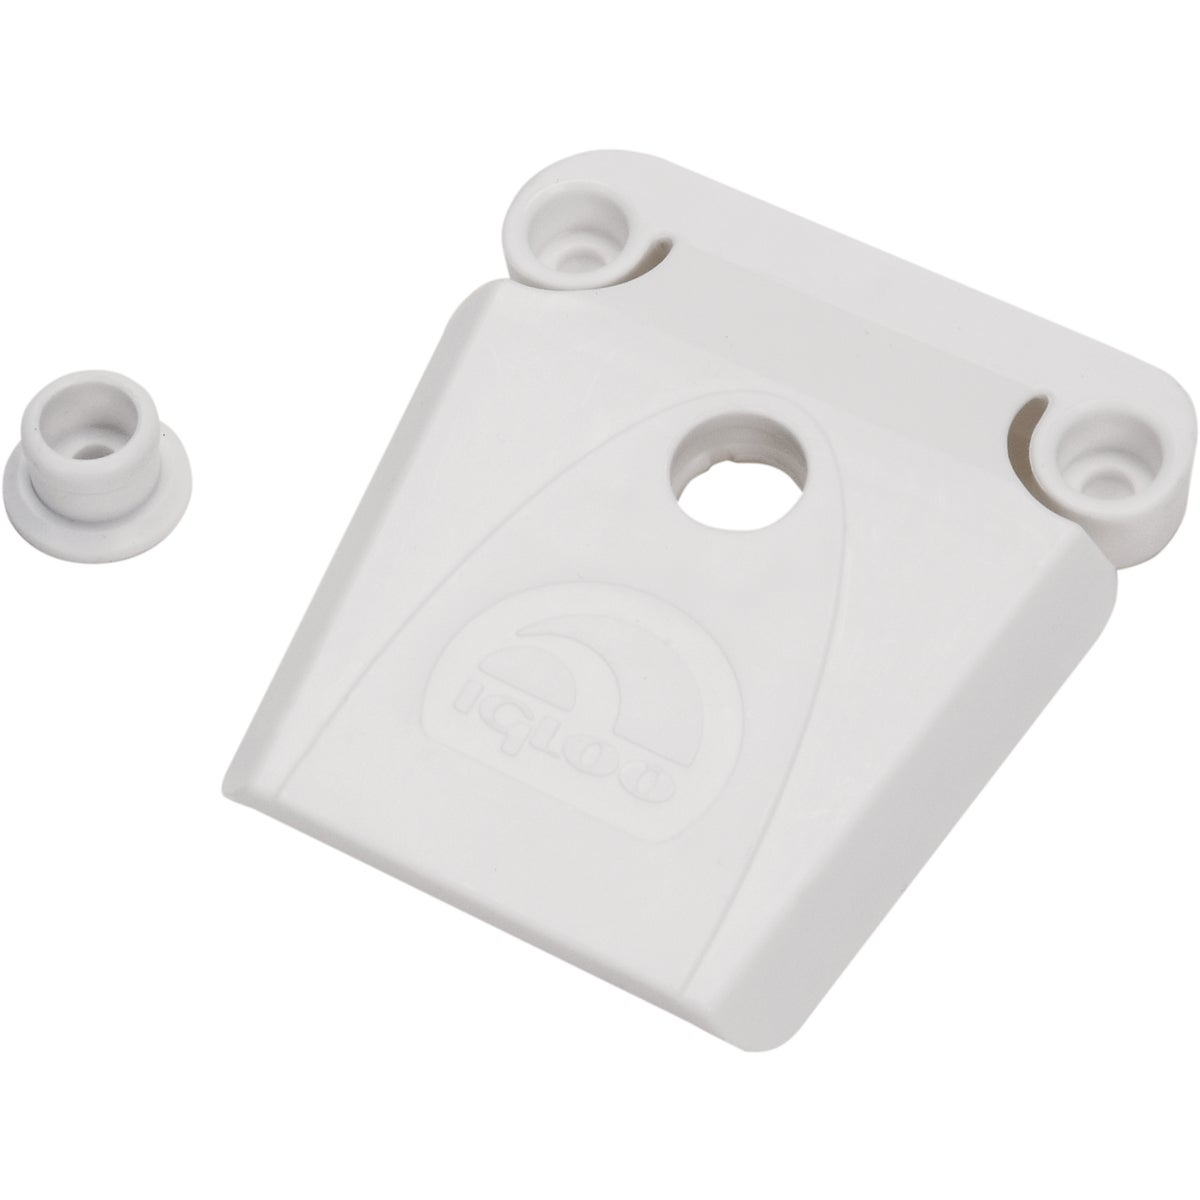 REPLACEMENT COOLER LATCH - 24013 by Igloo Corp